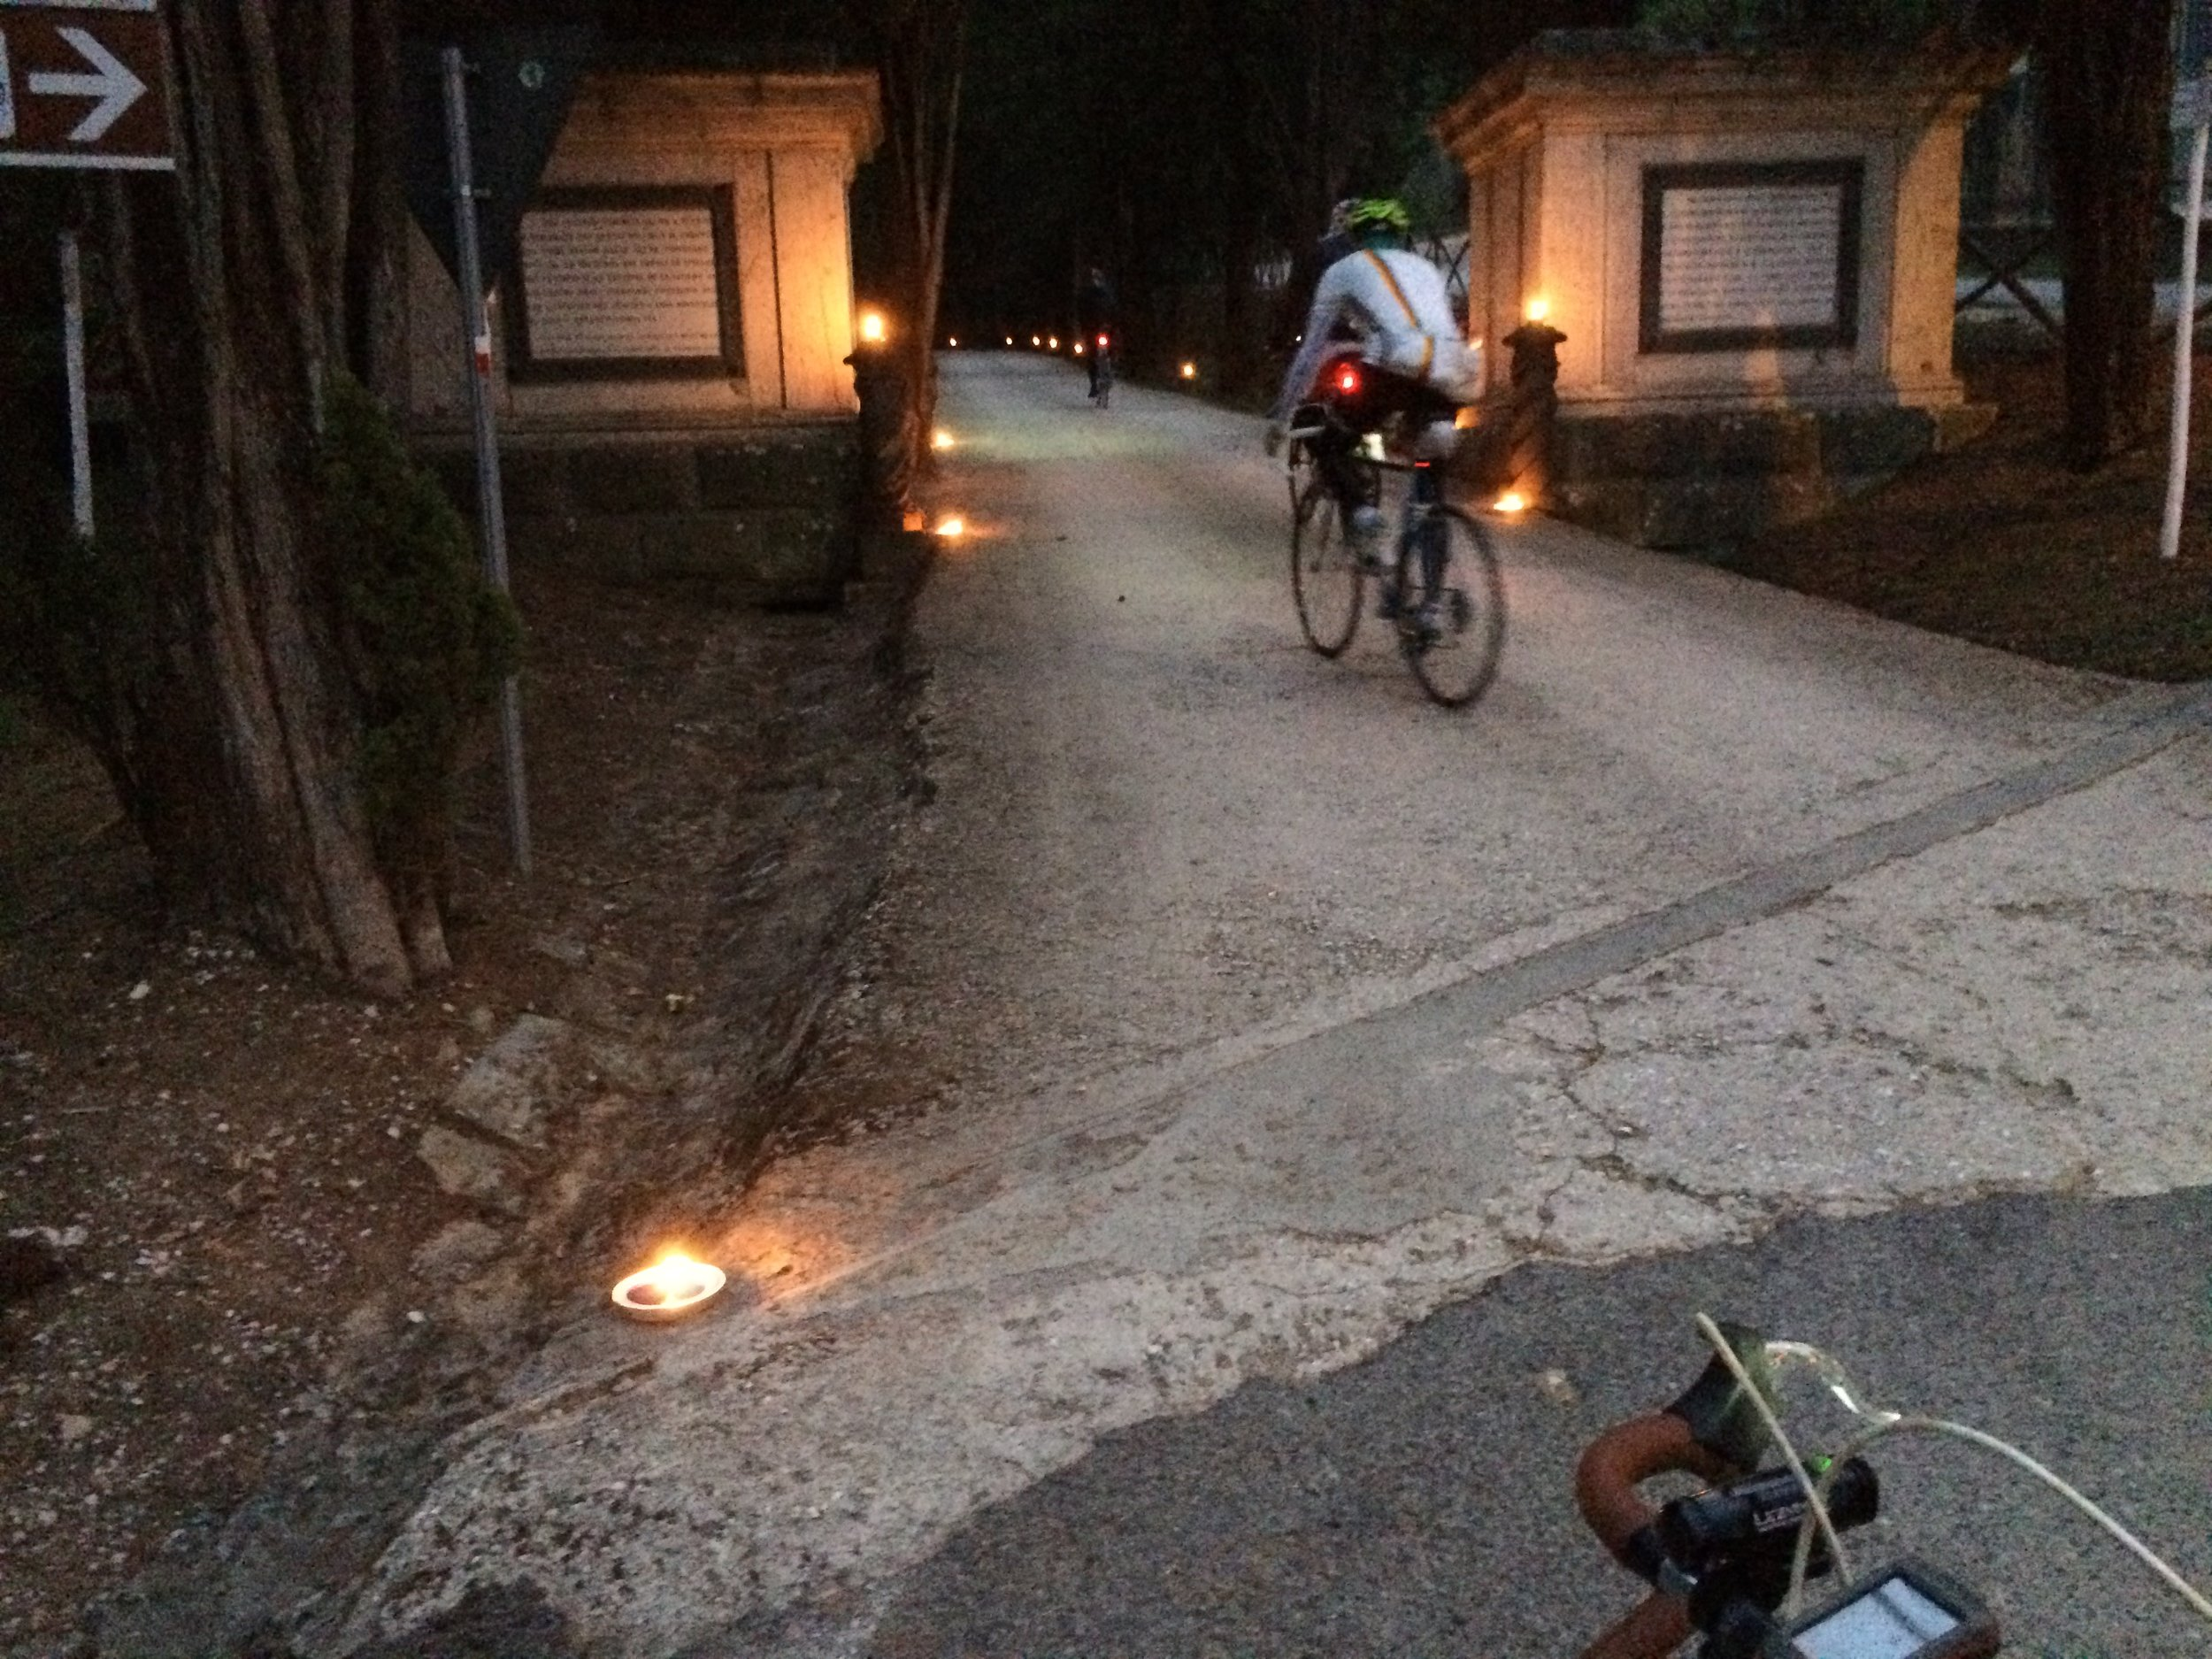 Oil lights lit the first gravel section at Castello di Brolio